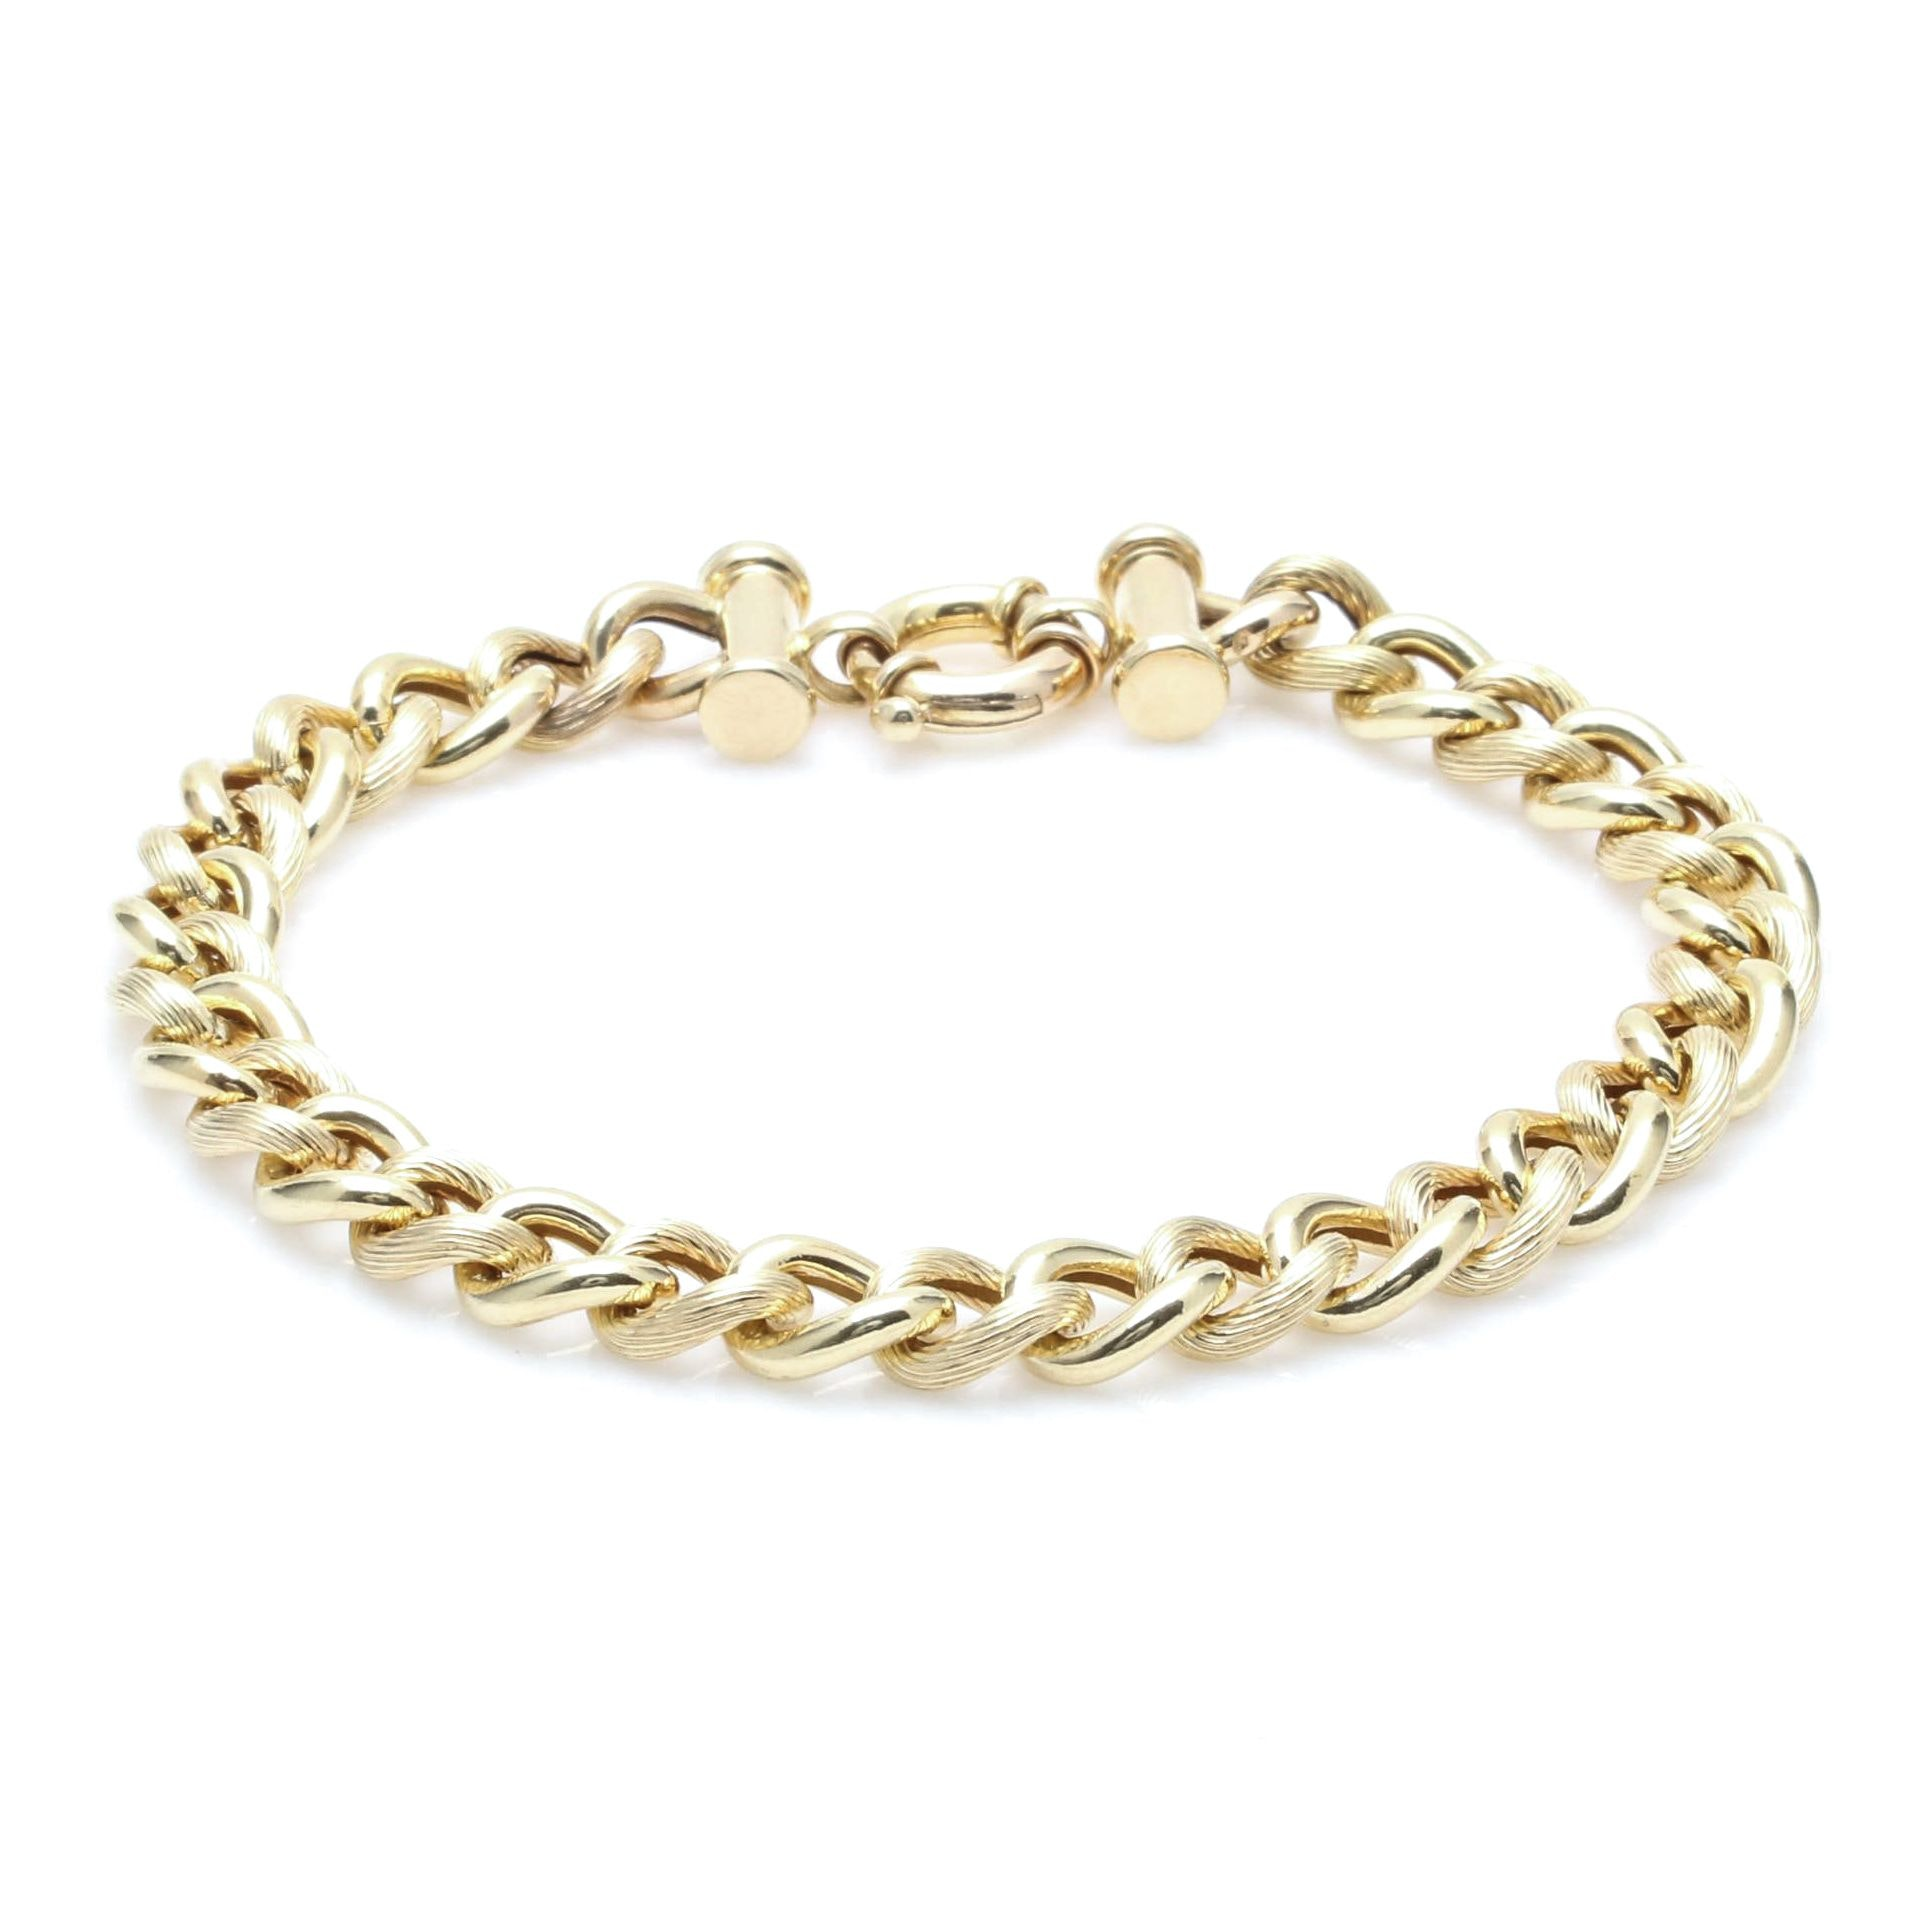 14K Yellow Gold Textured Curb Link Bracelet